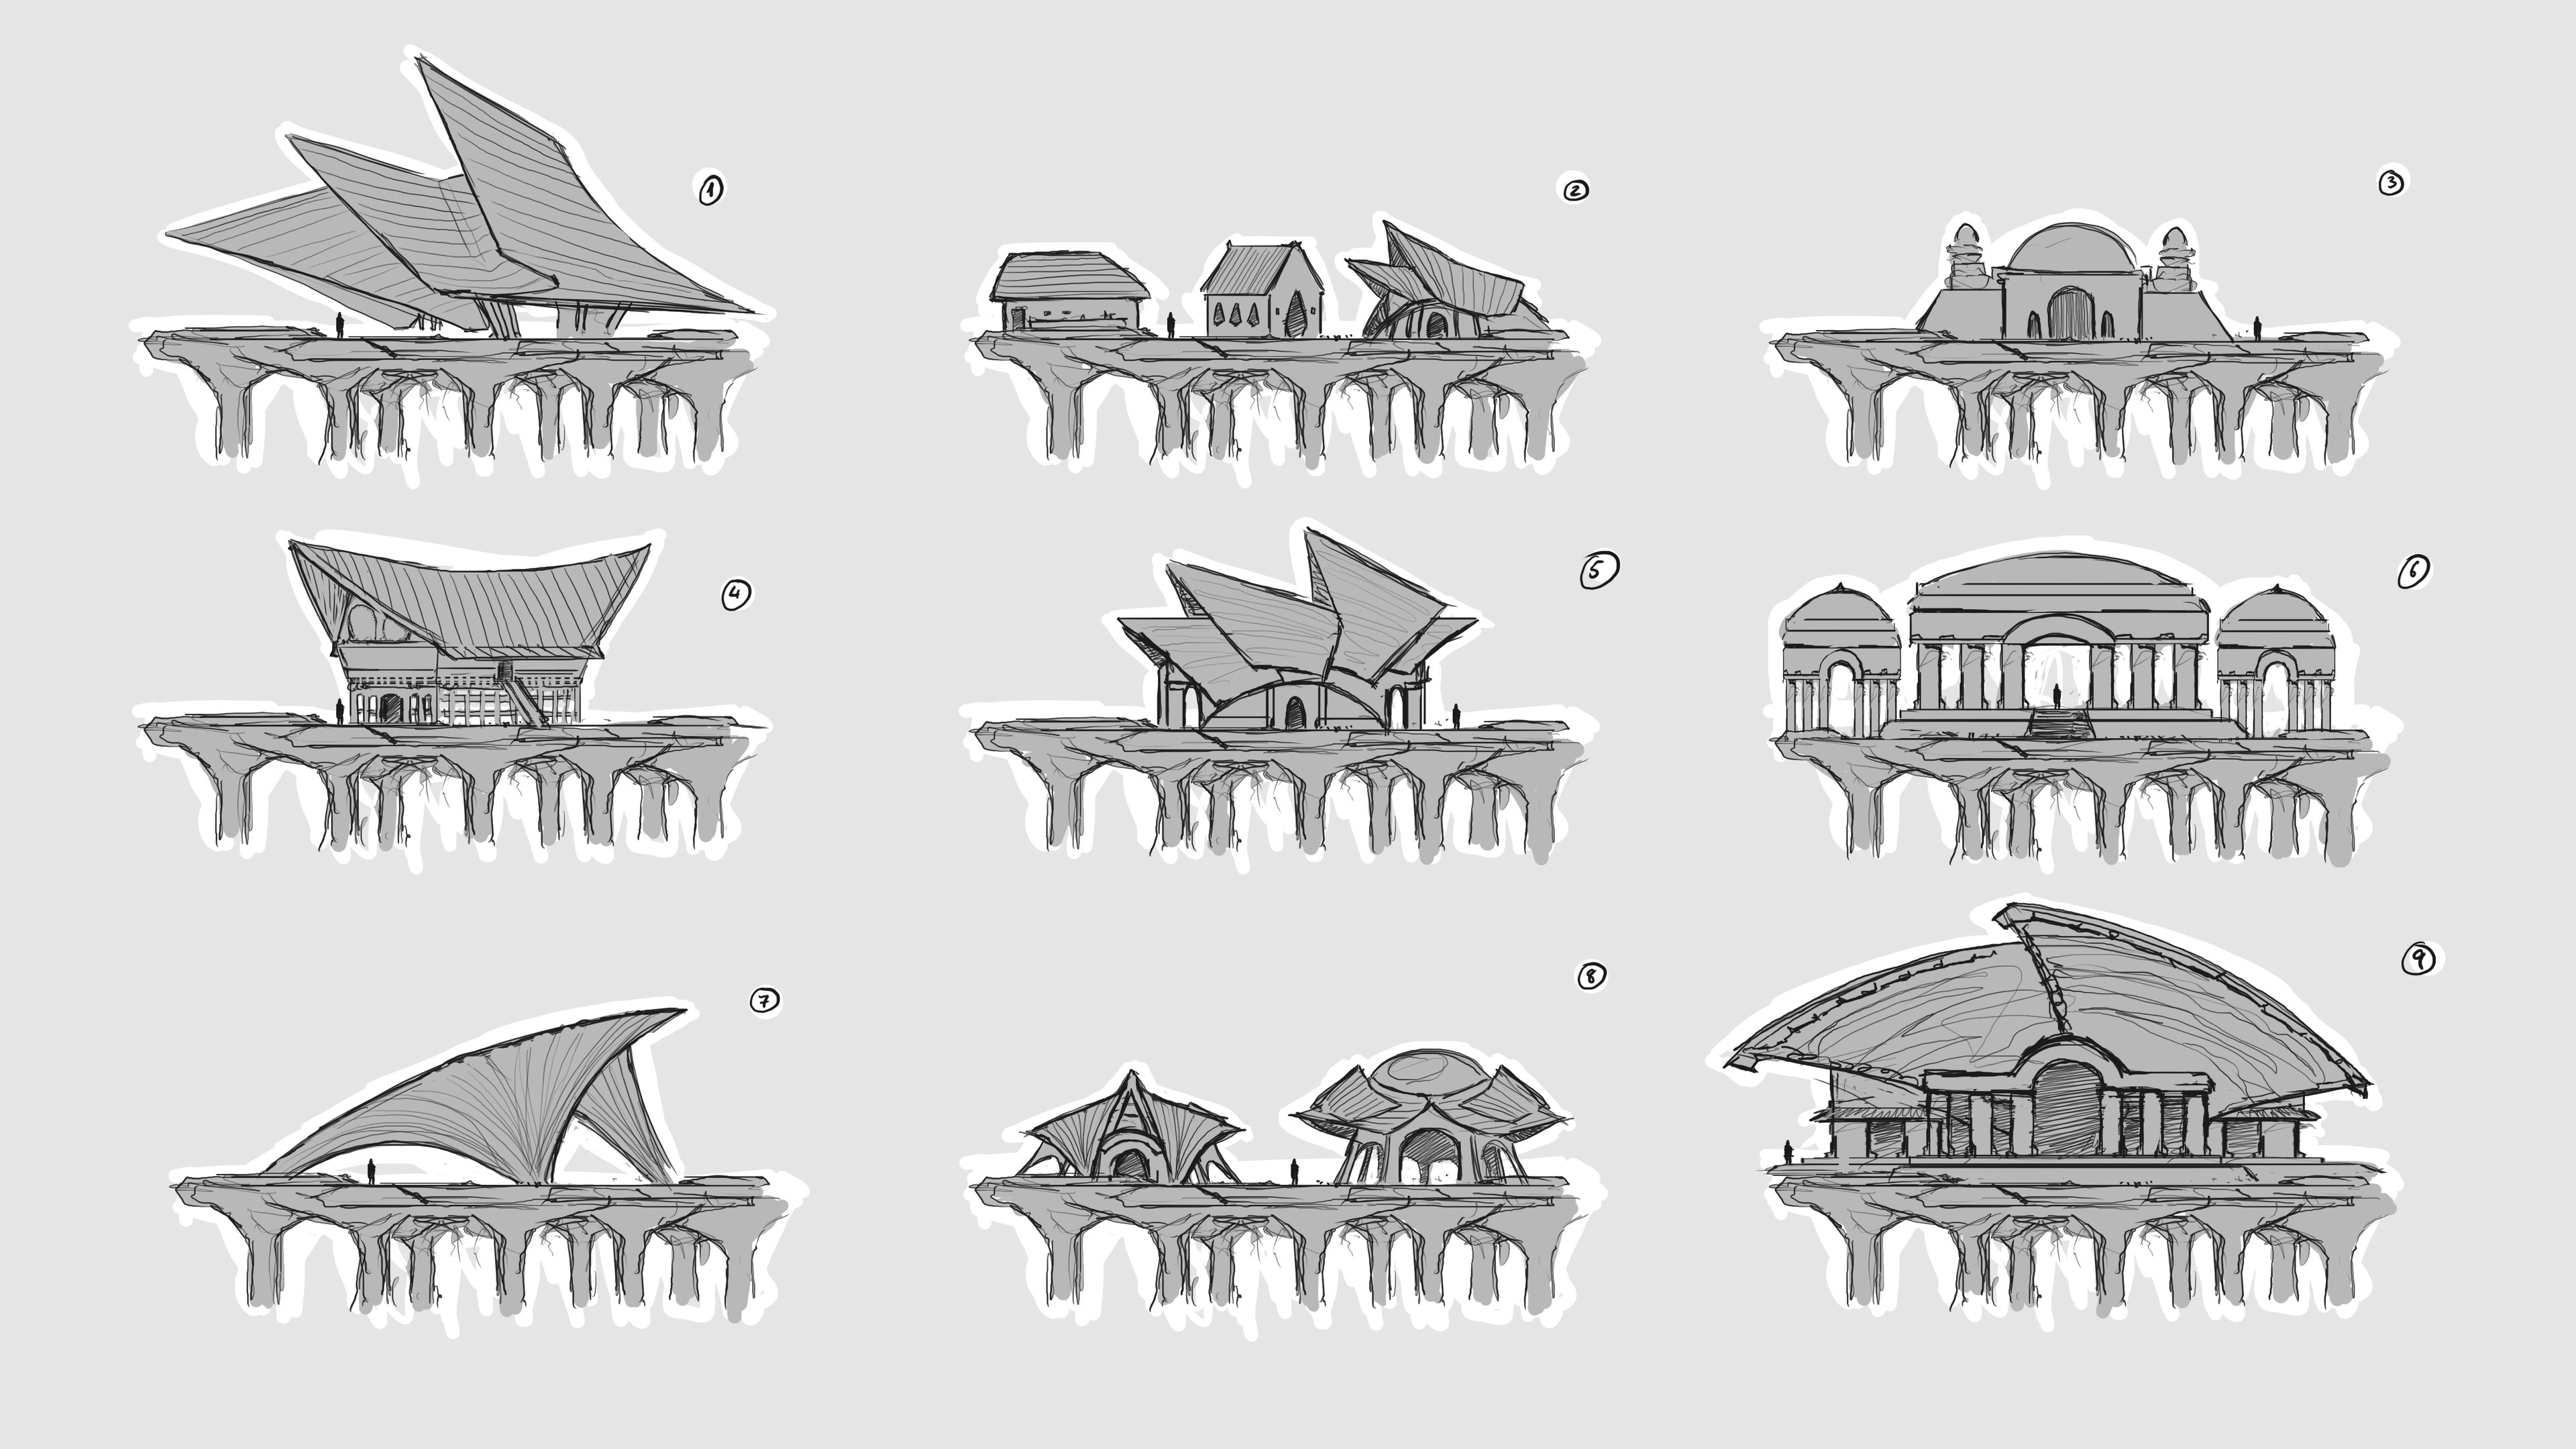 Early development sketches, searching for the style of this culture